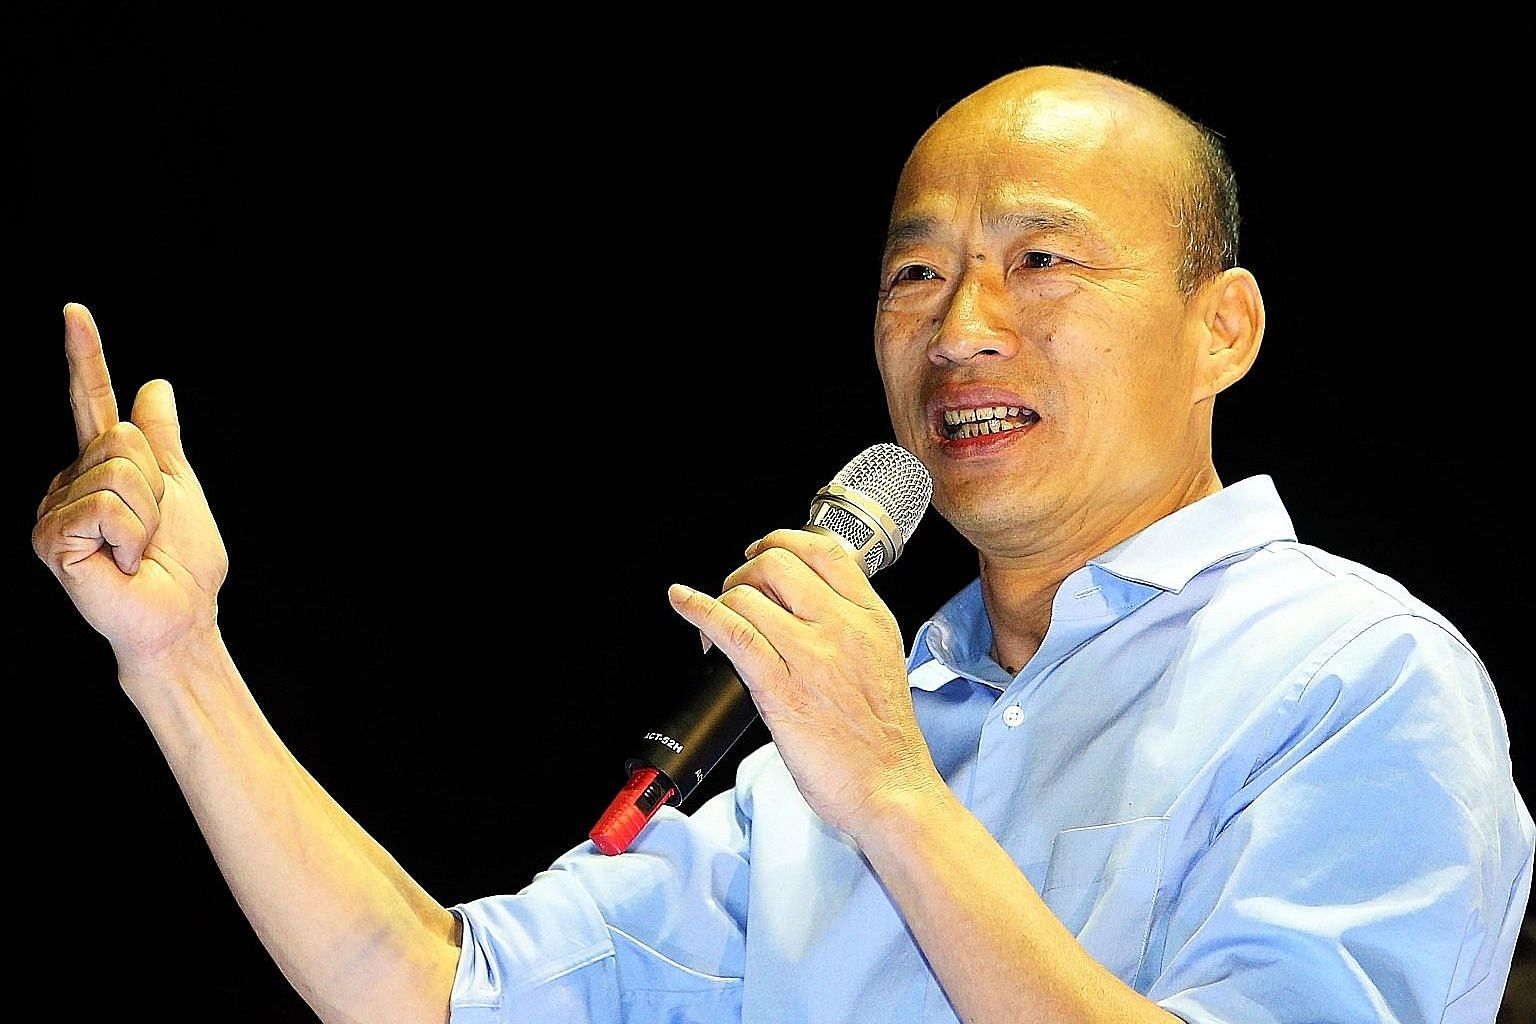 Mr Han Kuo-yu speaking at a rally in Kaohsiung last month. The 61-year-old KMT veteran was largely unknown only a year ago. Now, he commands a rock star-like following, parlaying an everyman charisma and folksy eloquence to smashing effect.